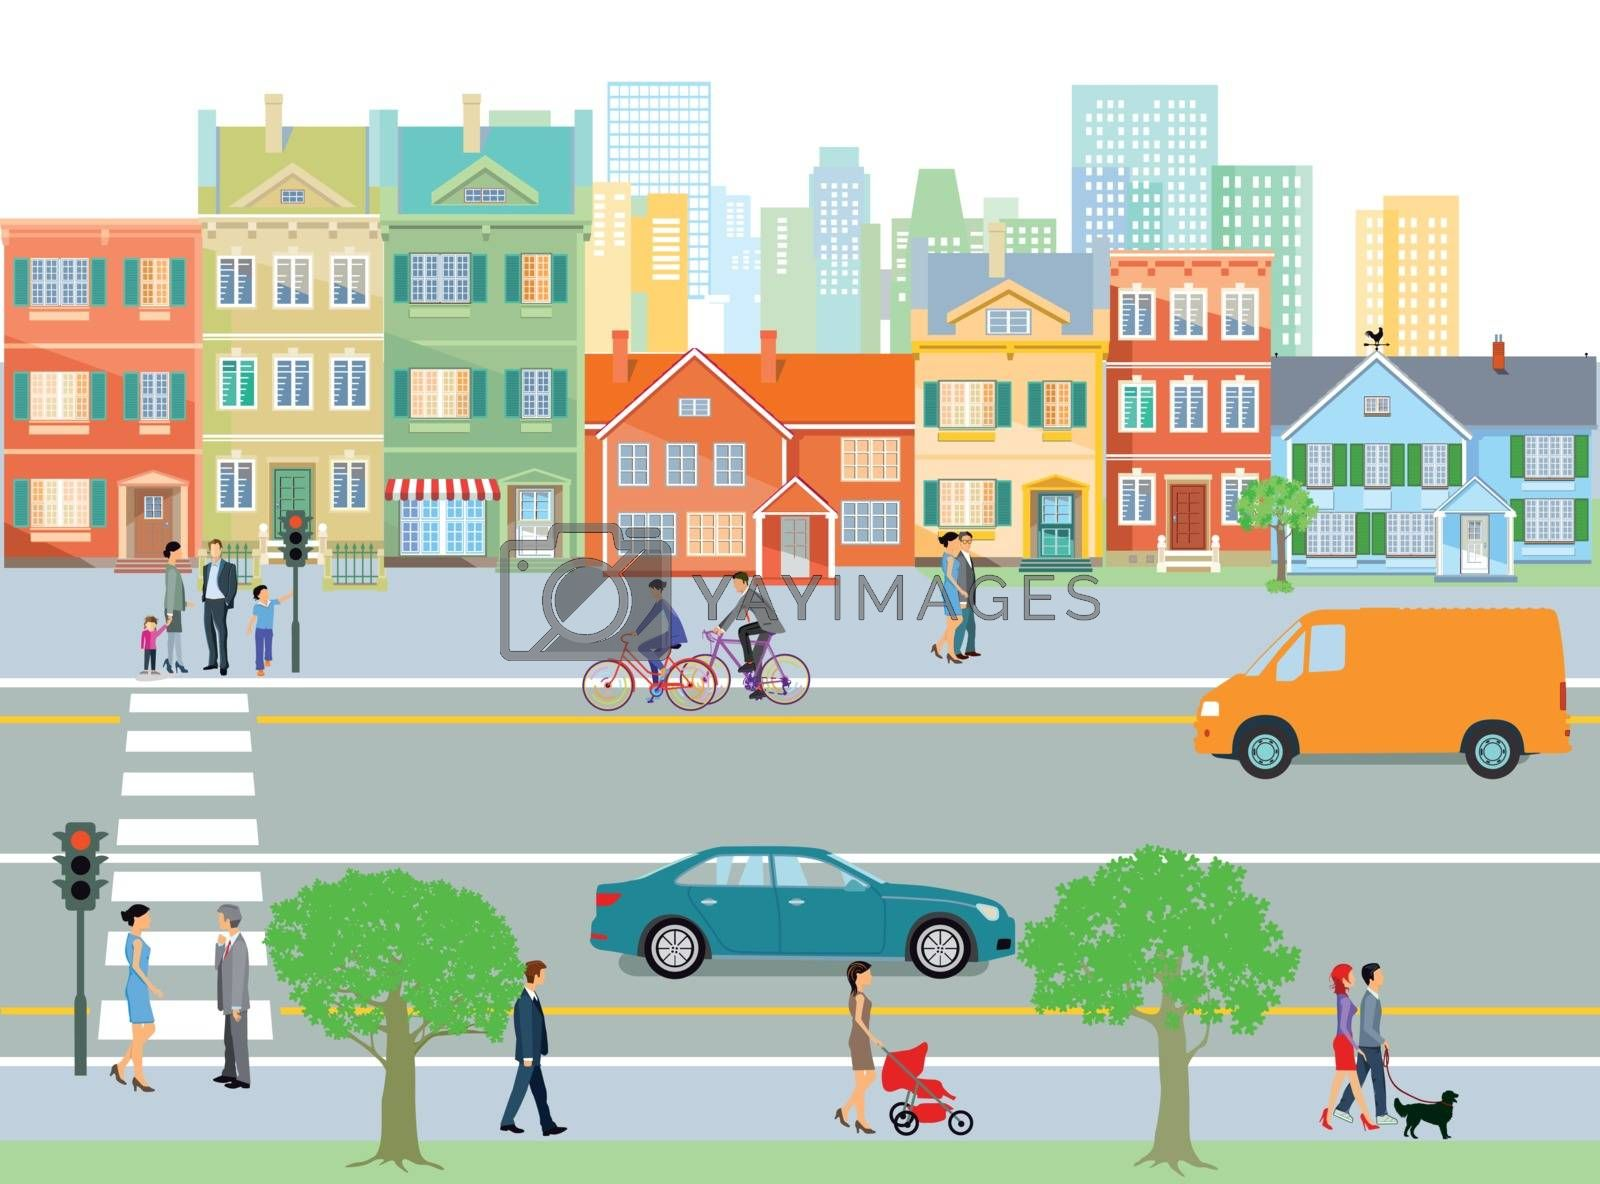 City with traffic and pedestrians, illustration